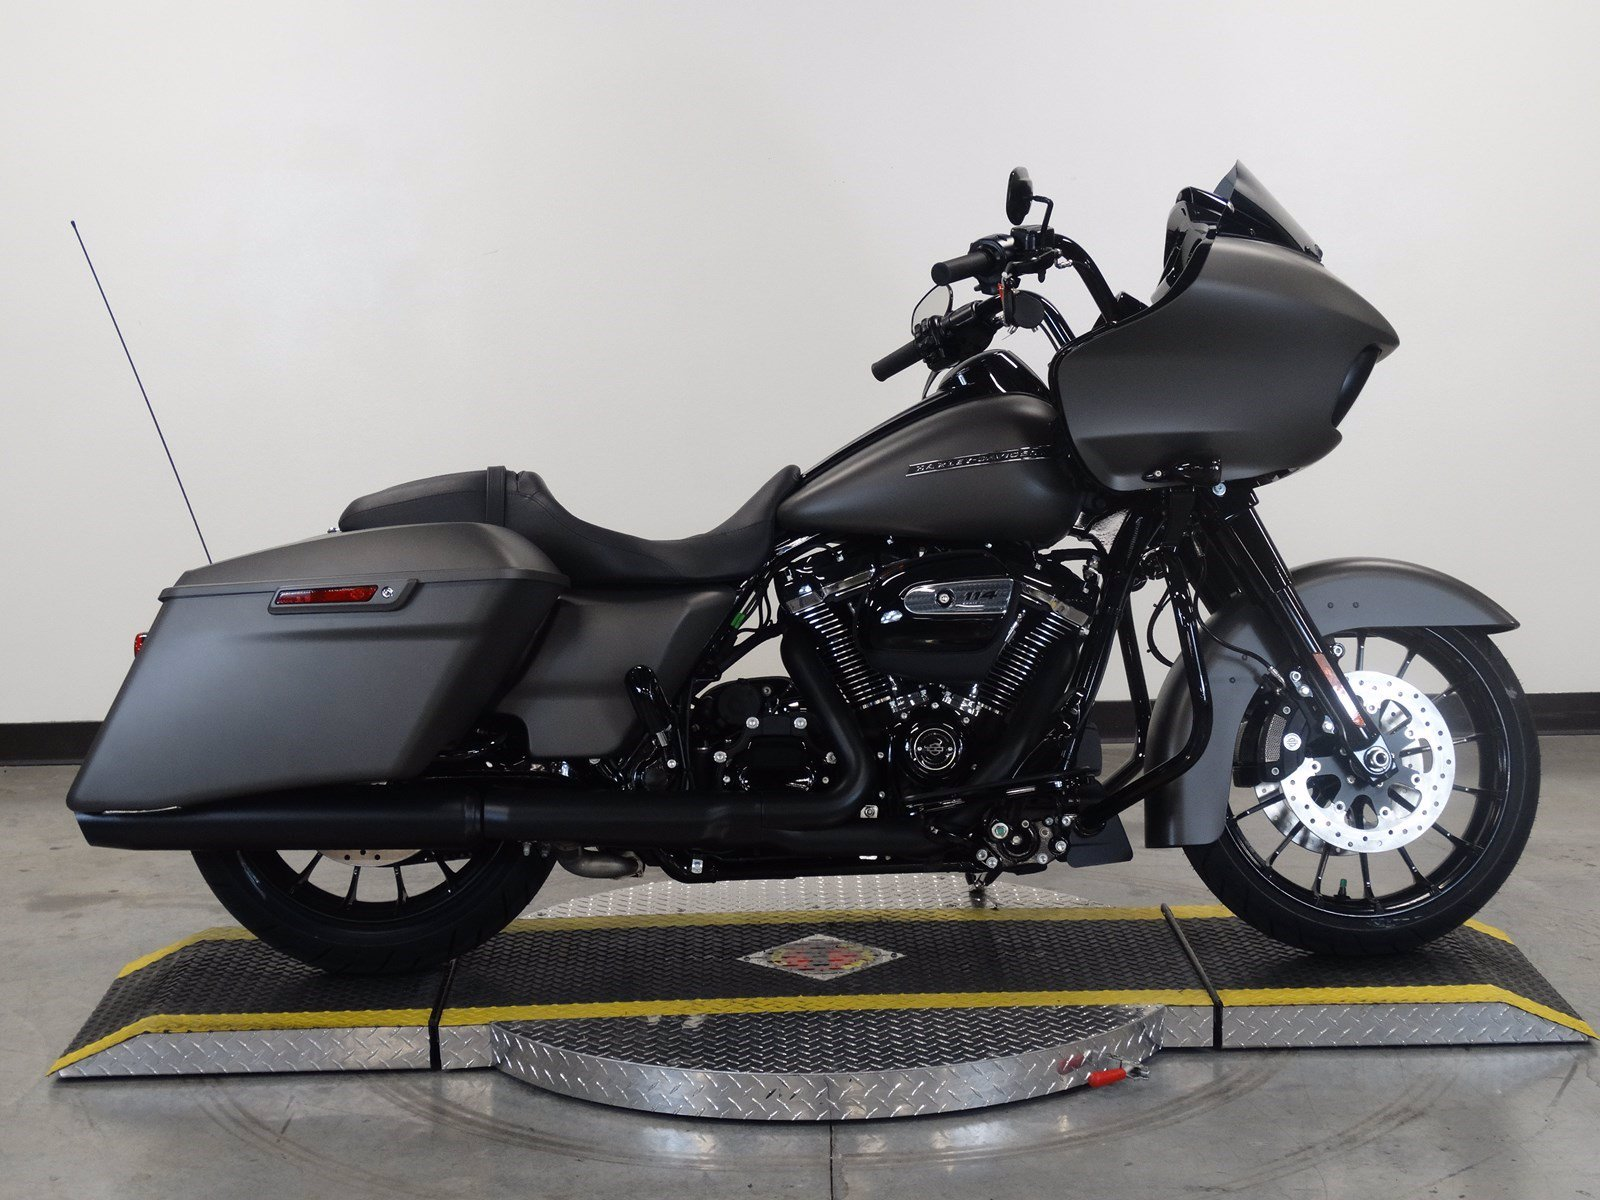 New 2019 Harley-Davidson Road Glide Special FLTRXS